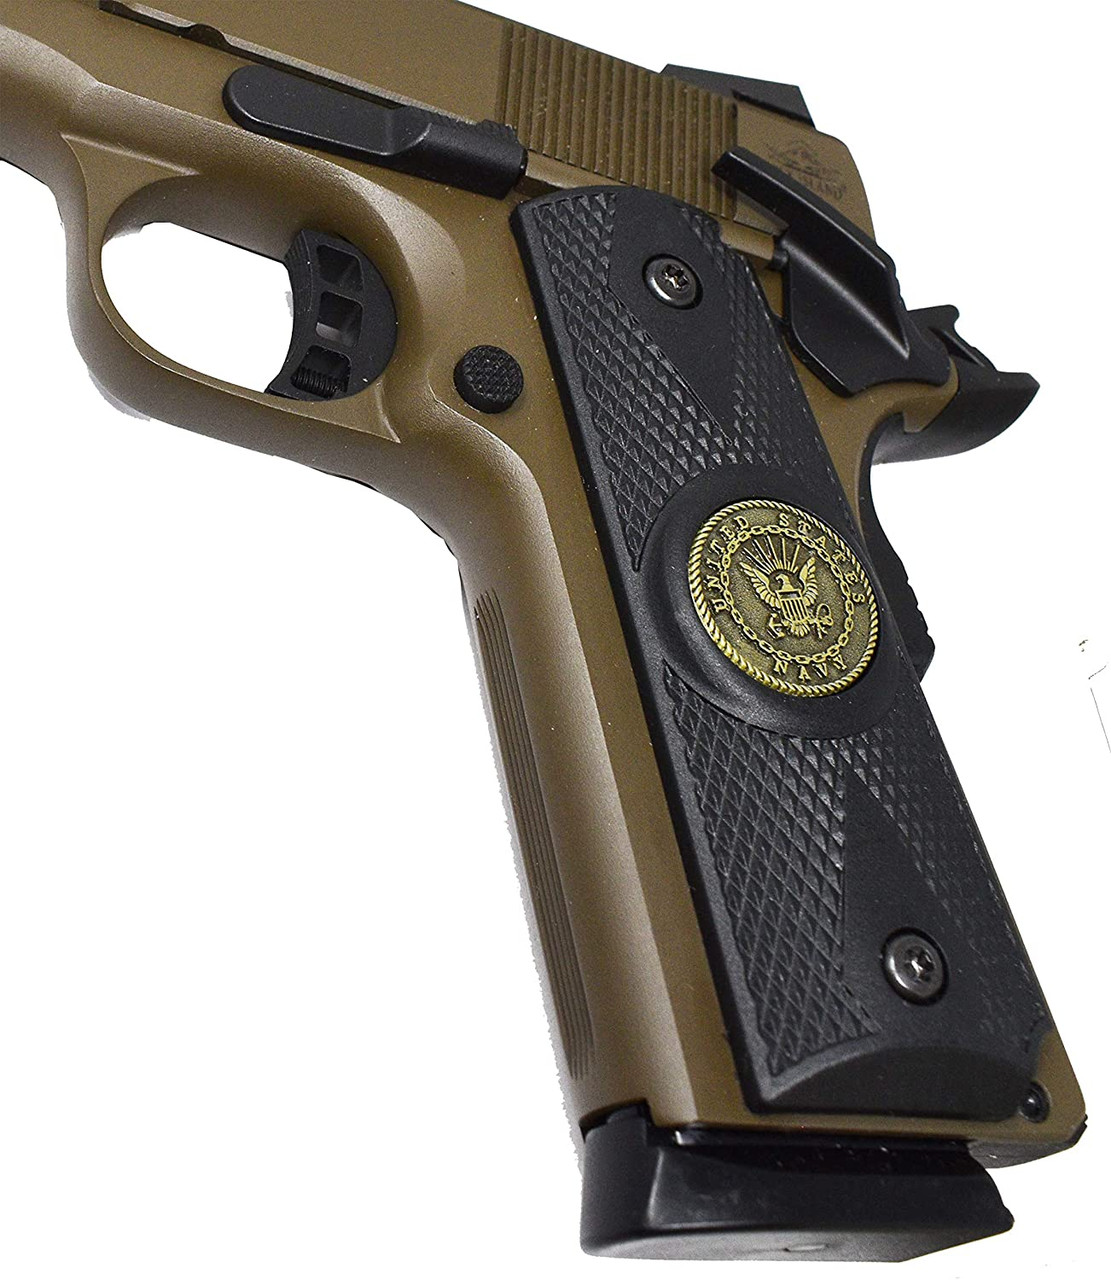 Garrison Grip 1911 Colt Full Size and Clones with US Navy Pewter Medallion Set in Polymer Grips